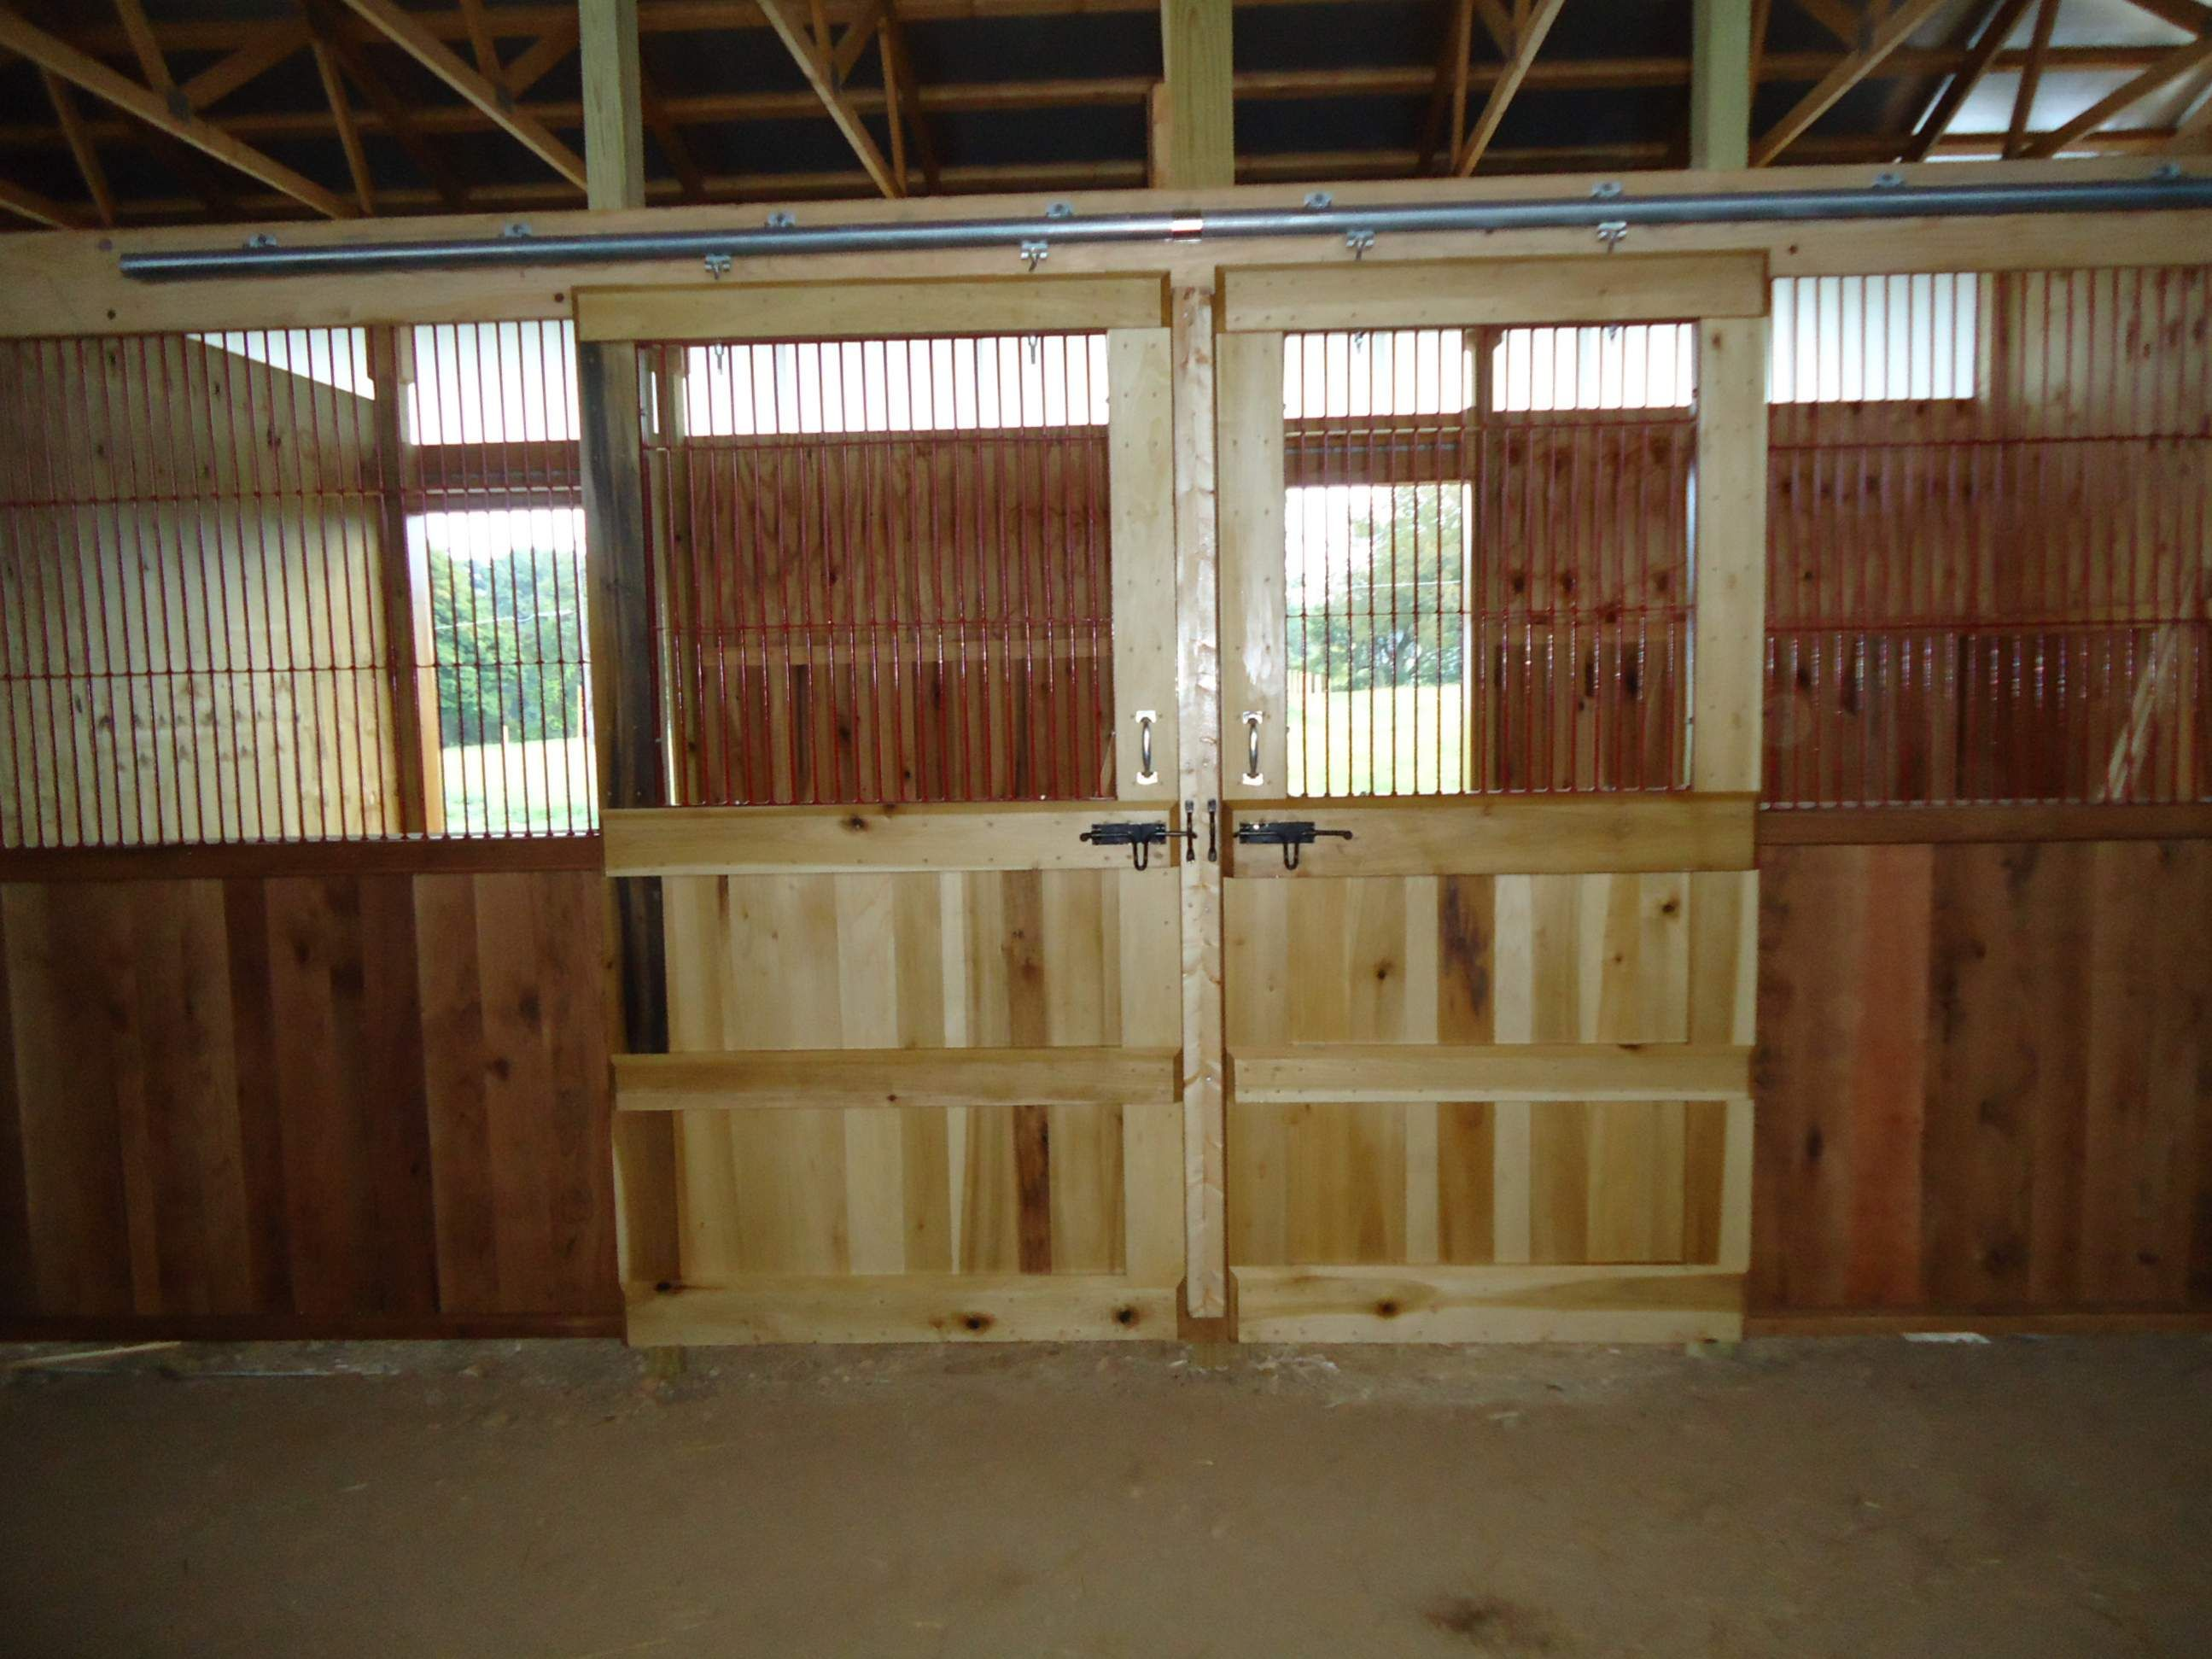 diy stalls idk how sturdy these are and how well they would work but this is a neat idea horse stall photos - Horse Barn Design Ideas